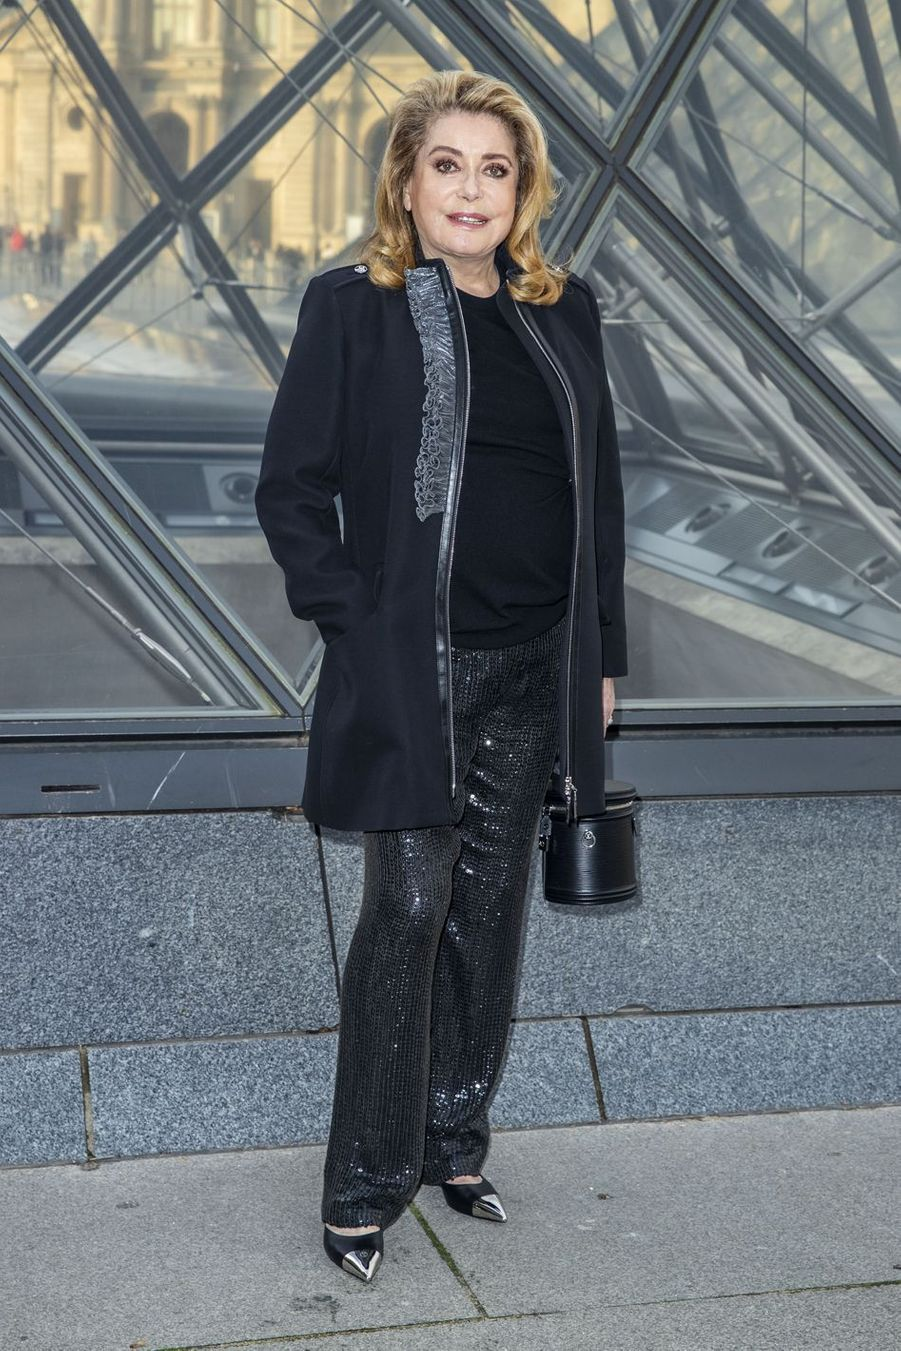 Catherine Deneuve au défilé Louis Vuitton à Paris, le 5 mars 2019